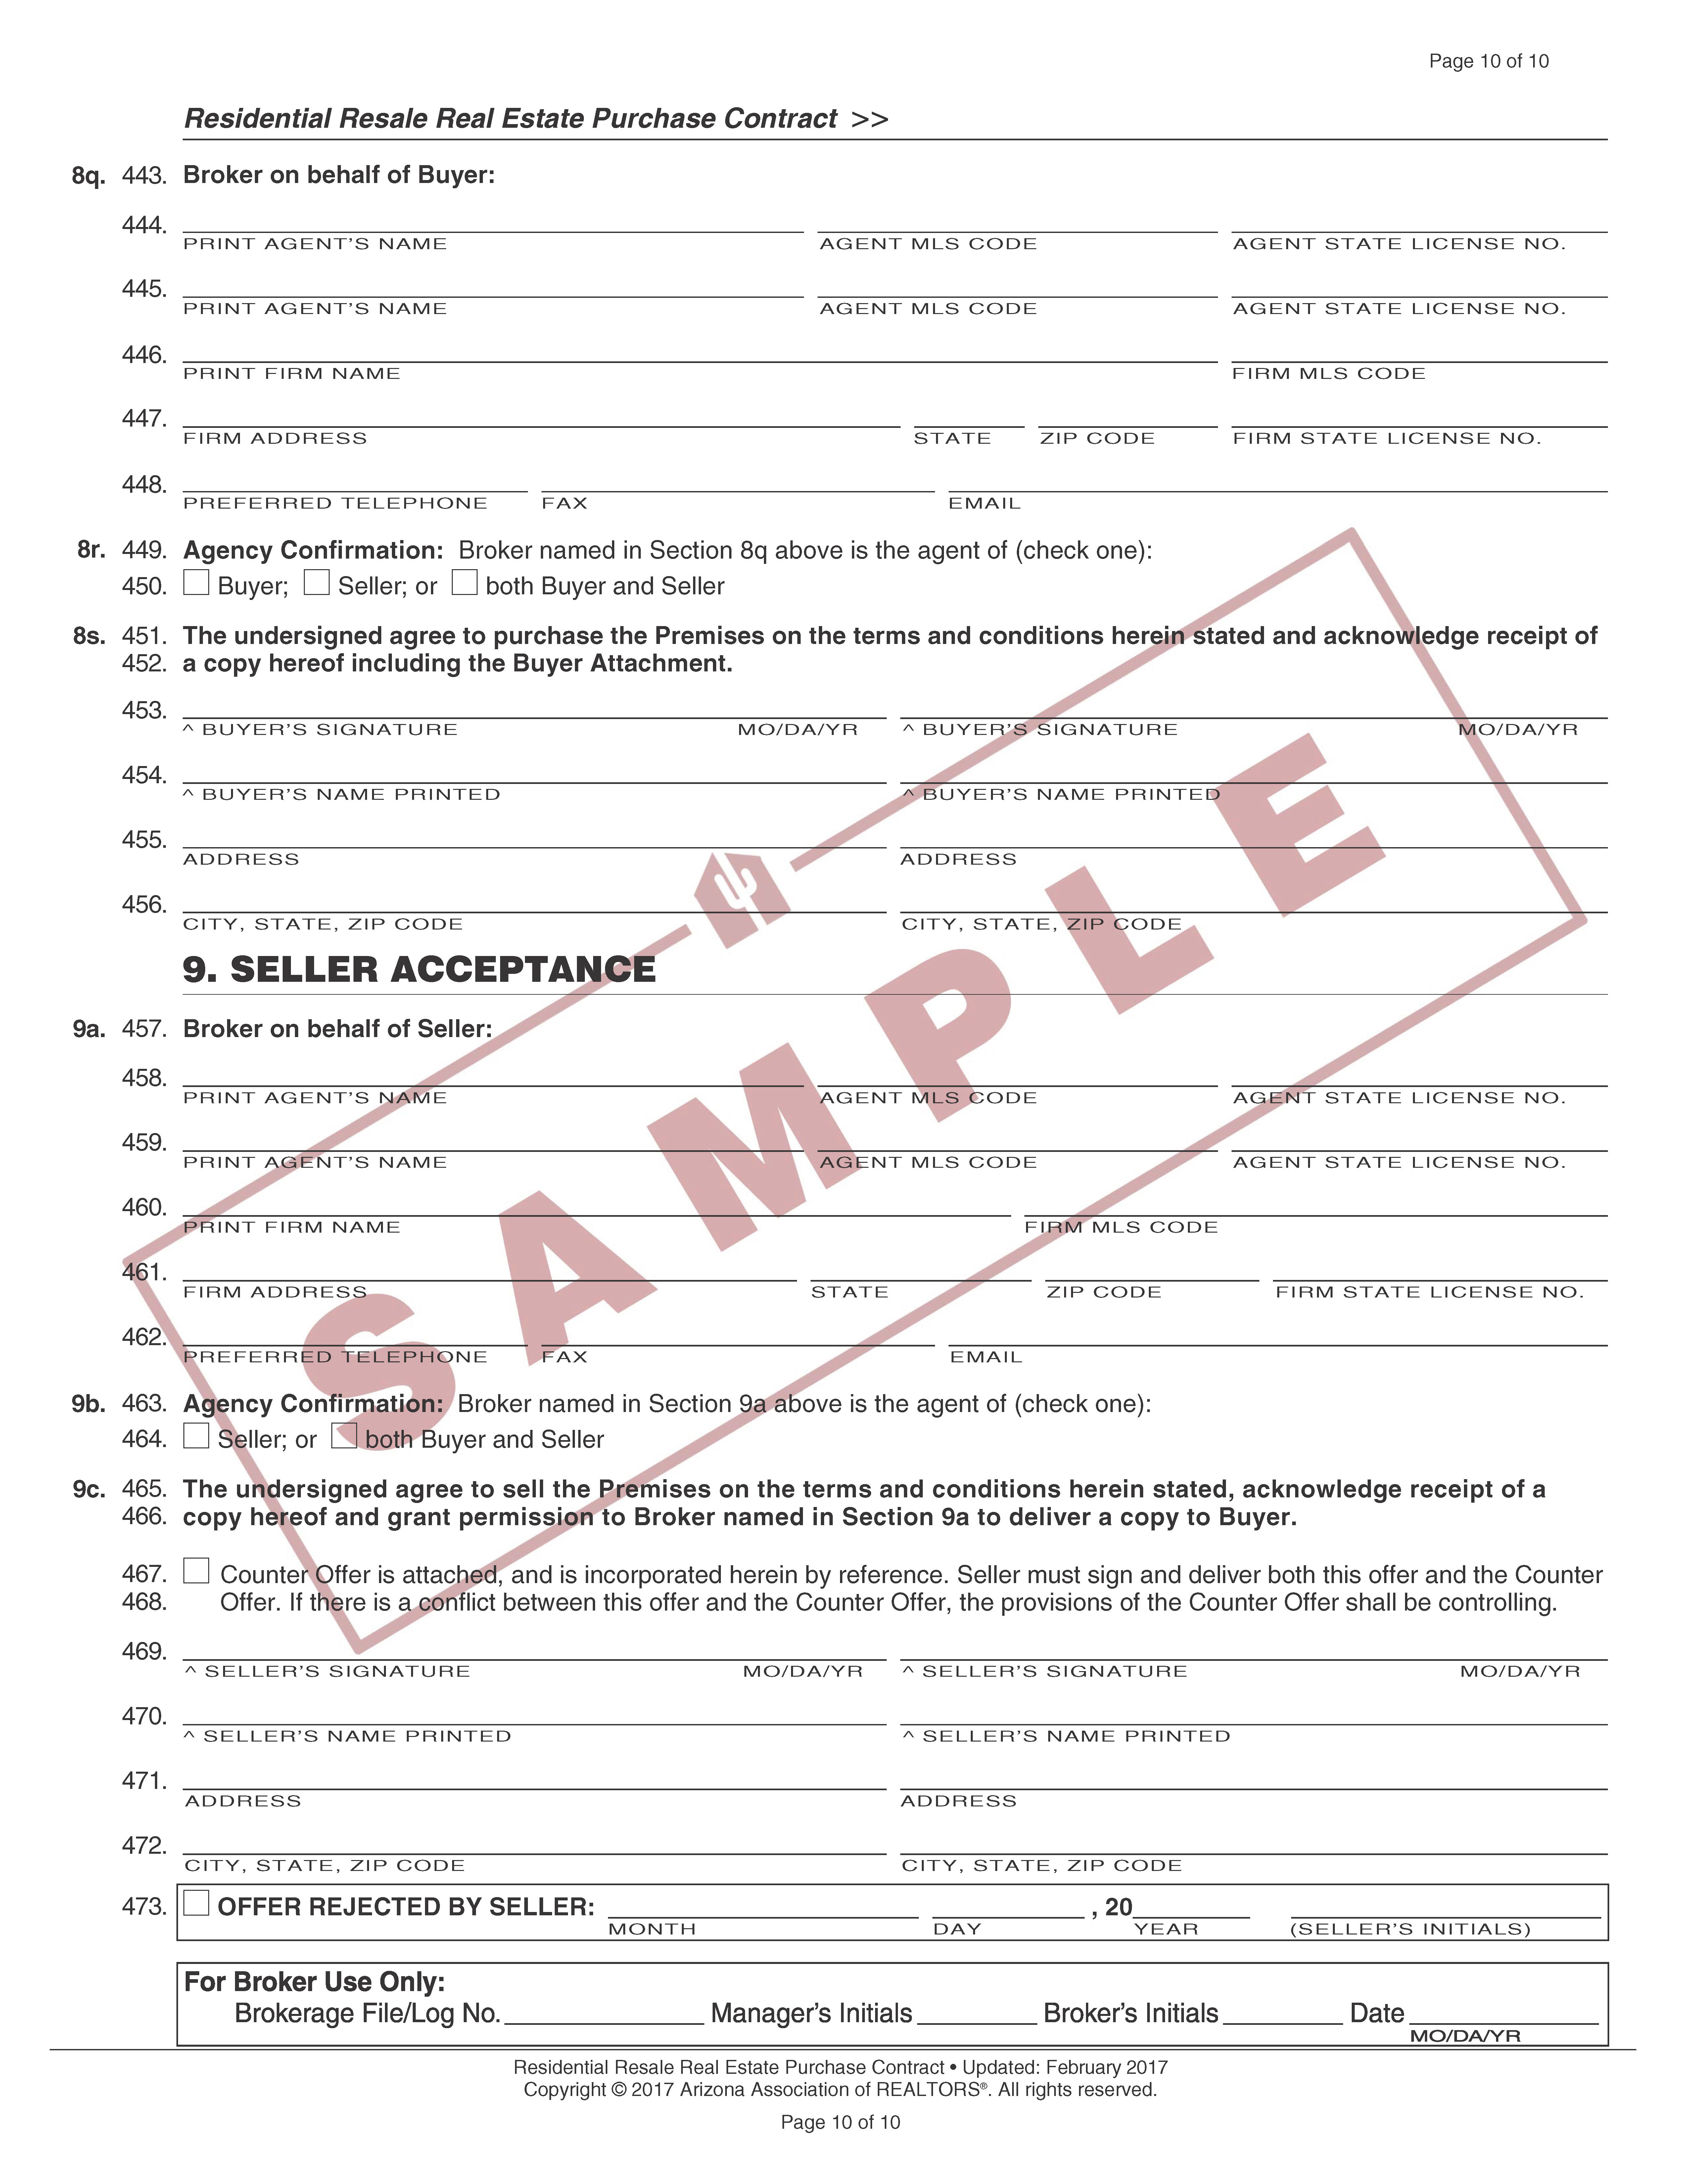 residential_resale_real_estate_purchase_contract_form_2-2017-sample_page_11